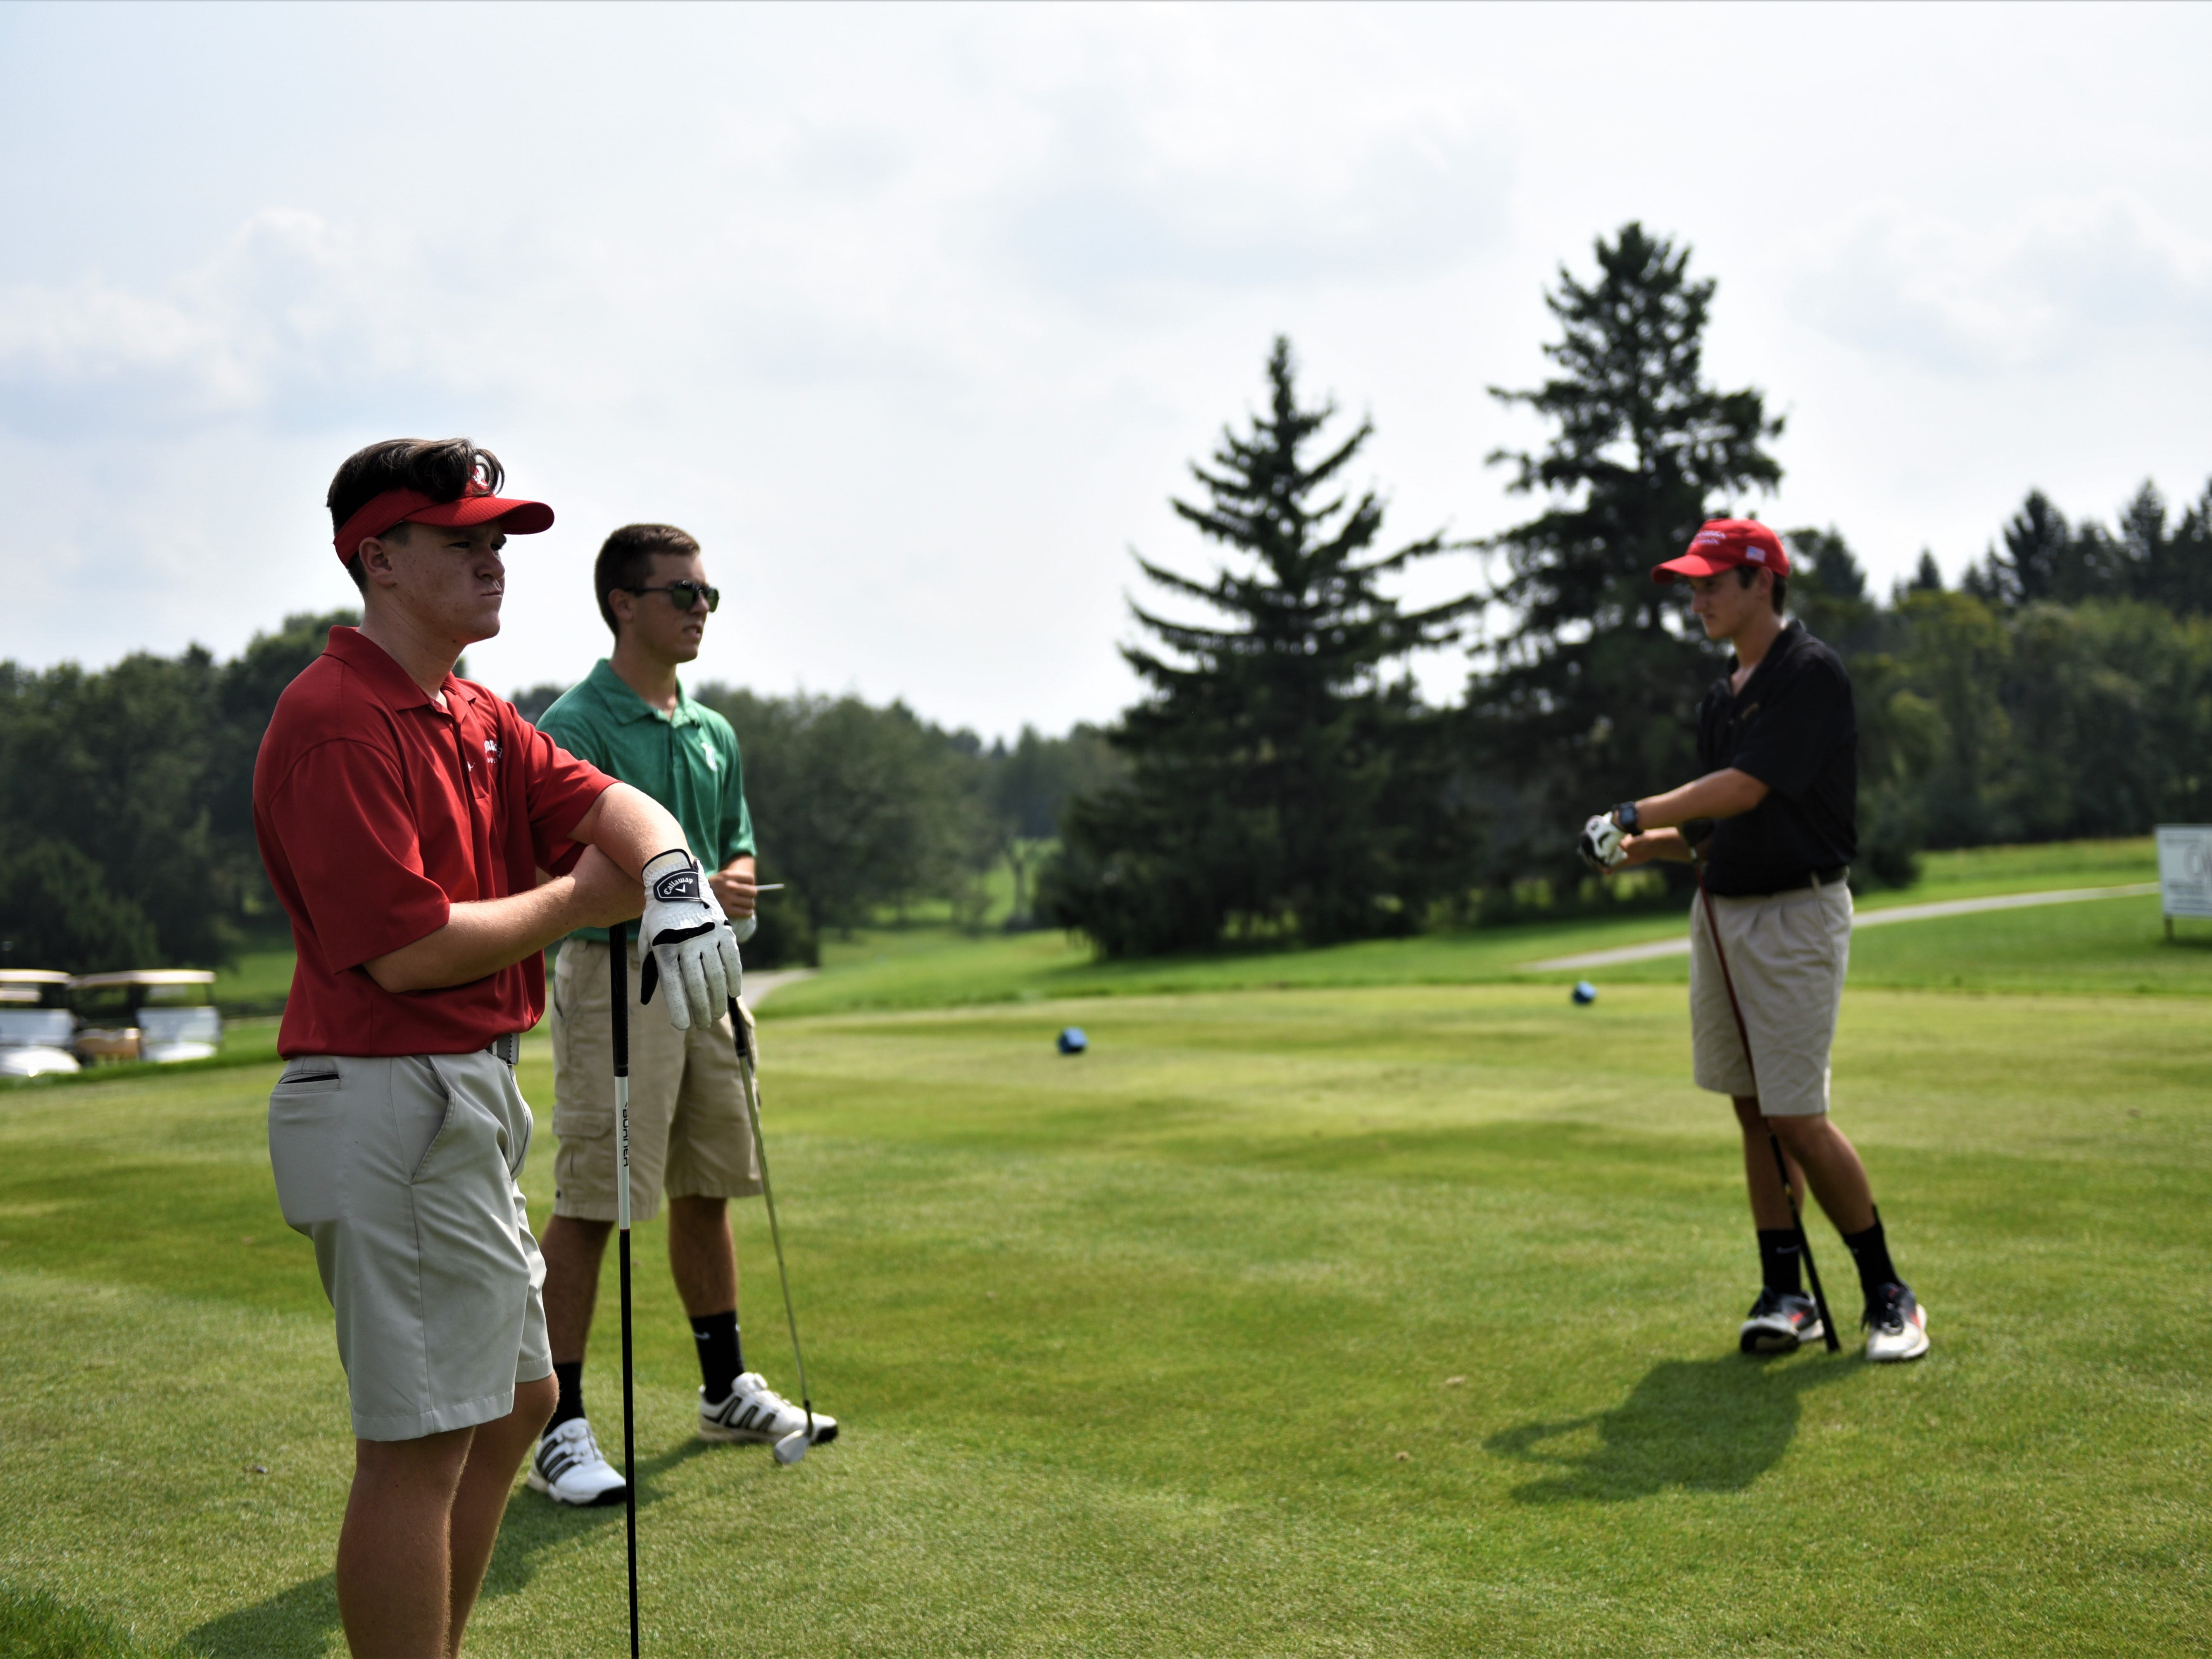 Bermudian Springs' Fritz Meixner, York Catholic's Ben Andrasi and Delone Catholic's Nick Carpenter watch the action during the Division III golf match at the South Hills Golf Course on Aug. 27, 2018.